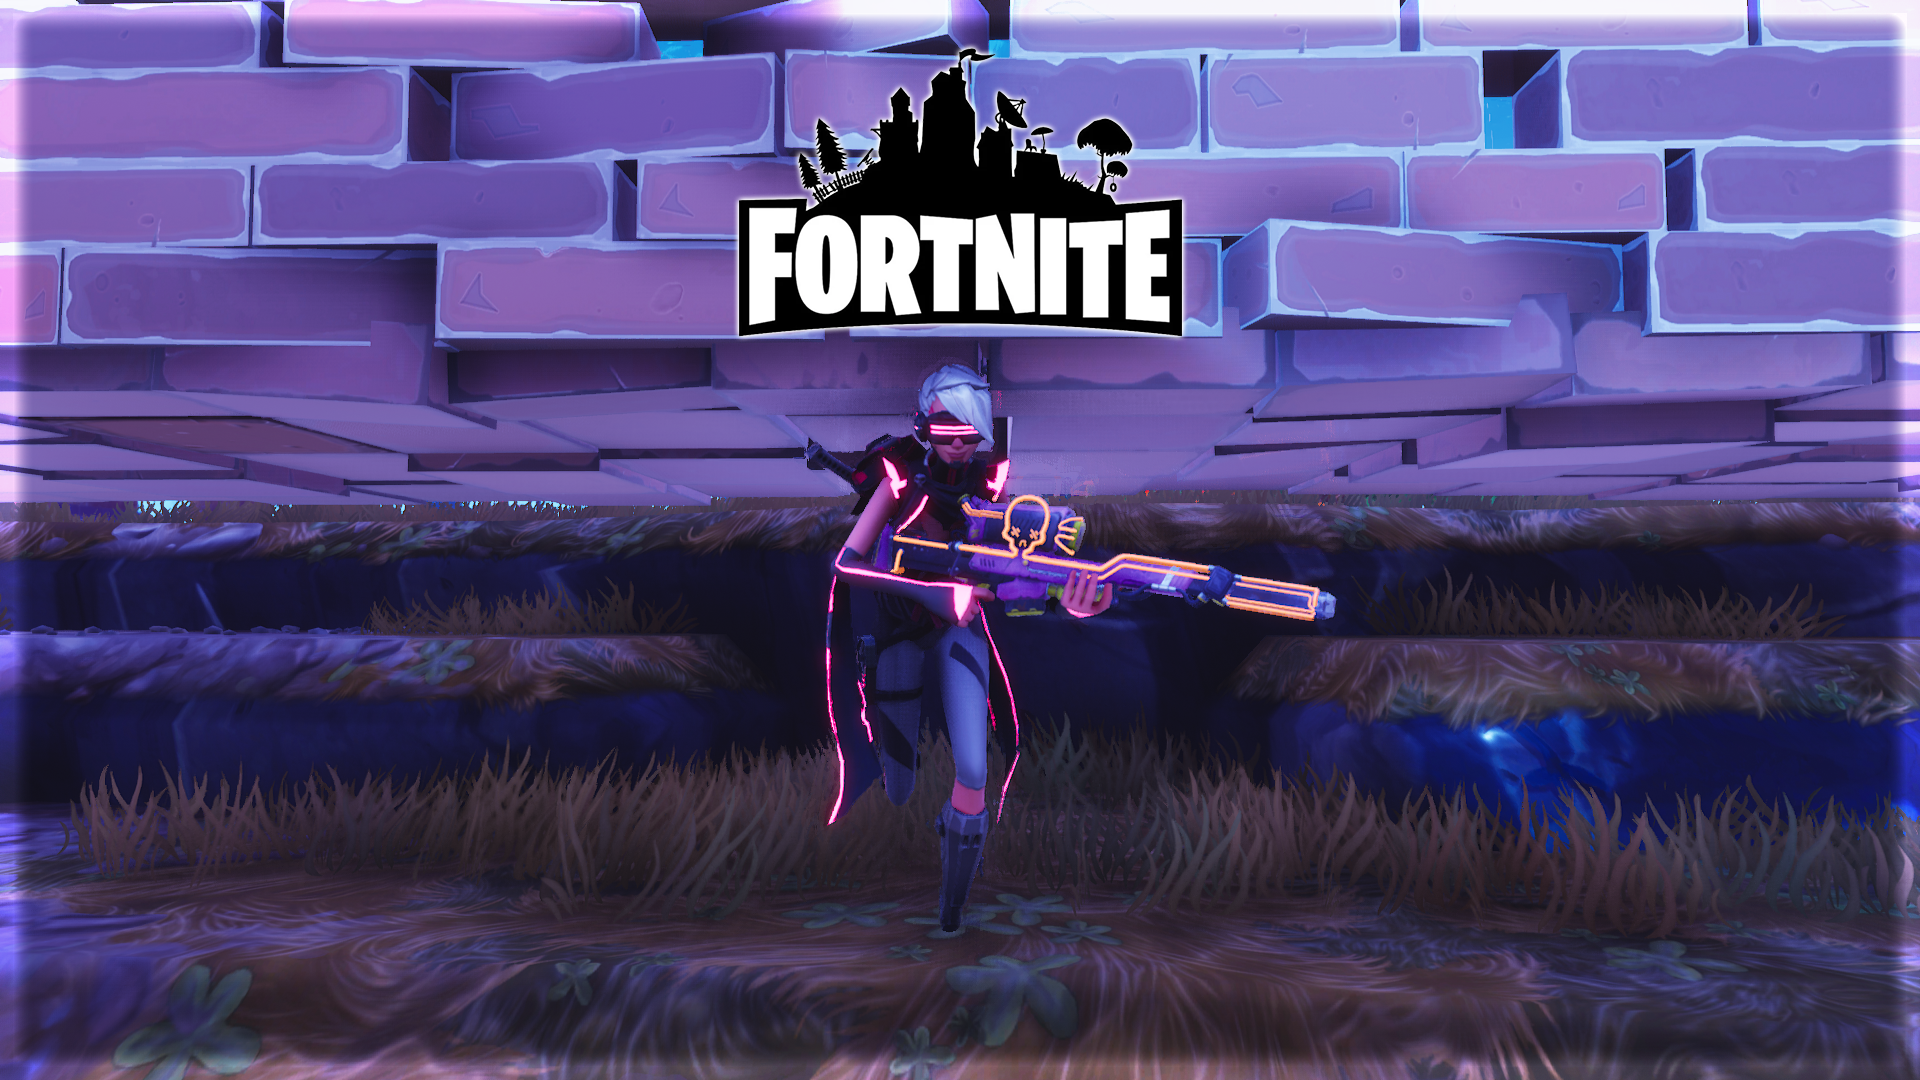 Fortnite Desktop Wallpapers Top Free Fortnite Desktop Backgrounds Wallpaperaccess